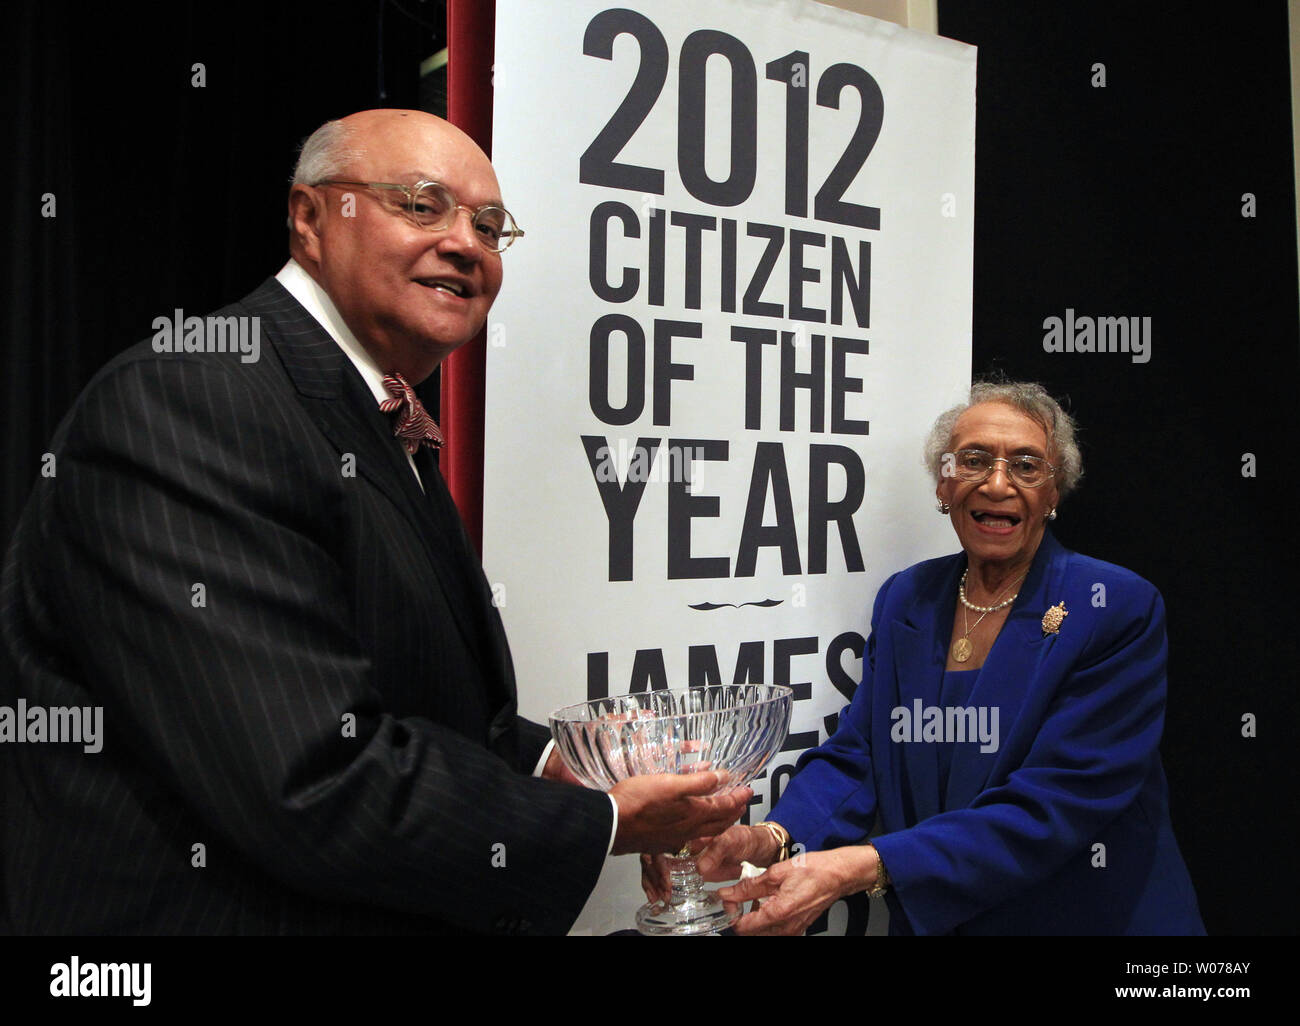 James Buford, President and CEO of the Urban League of St. Louis accepts his award after being named 2012 St. Louis Citizen of the Year from last year's winner civil rights attorney Frankie Freeman in St. Louis on April 29, 2013. UPI/Bill Greenblatt Stock Photo